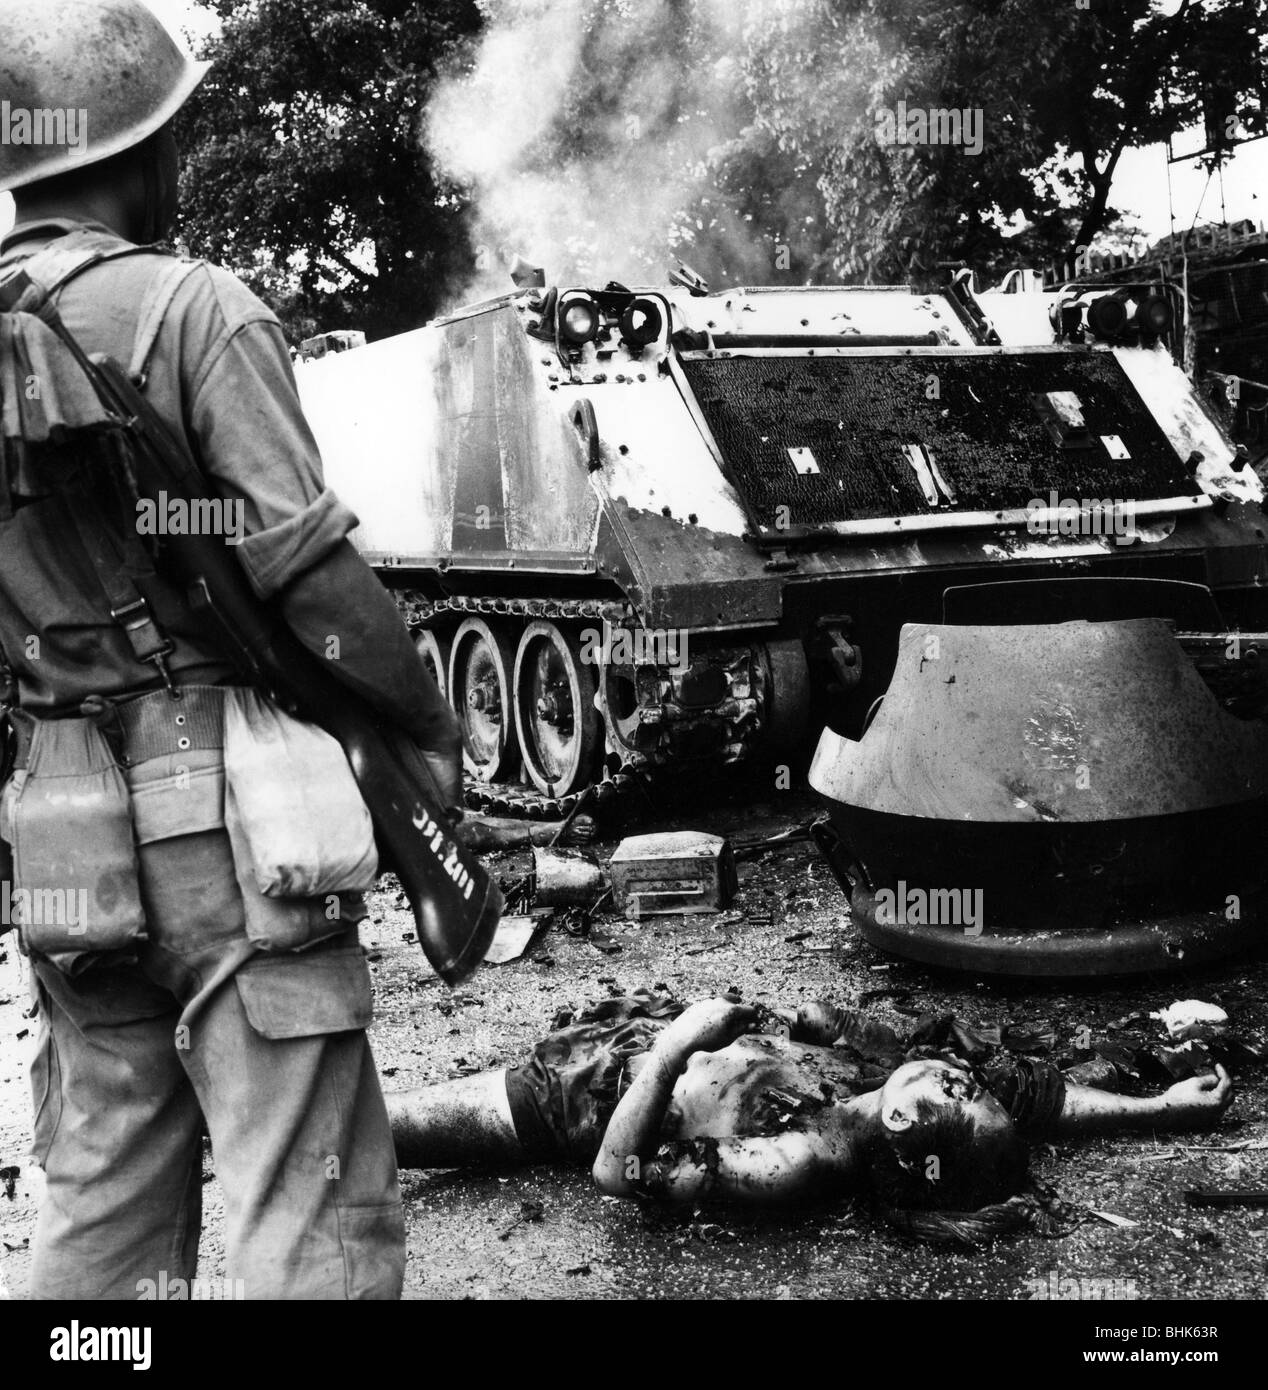 events, Vietnam War, dead bodies and a destroyed military vehicle after a Viet Cong attack on Phnom Penh, the capital - Stock Image